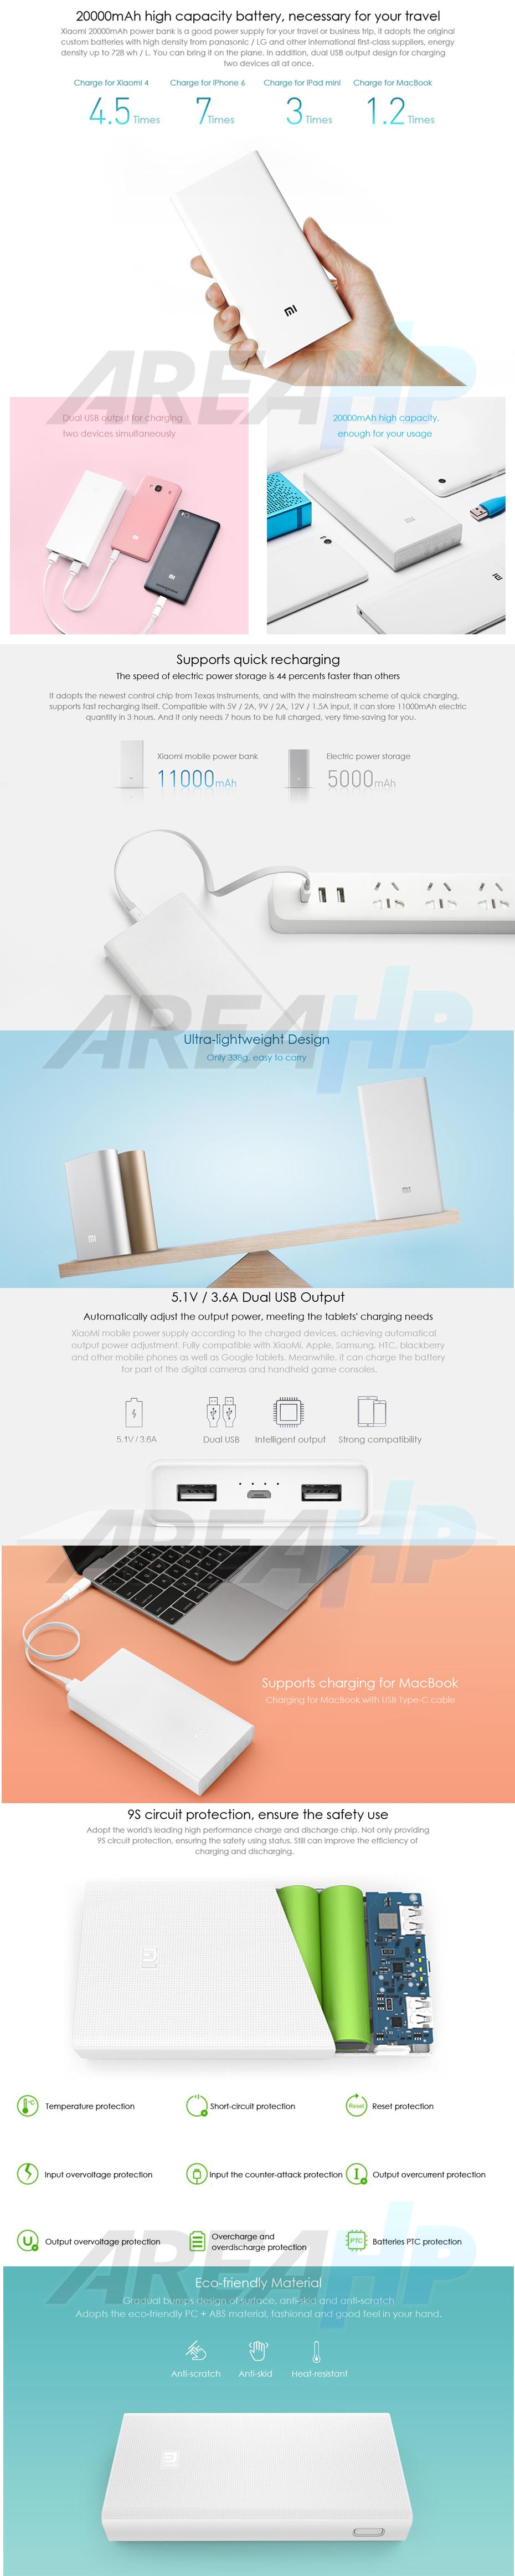 Powerbank Xiaomi Pro 2 20000mAh Fast Charger (Original) Overview